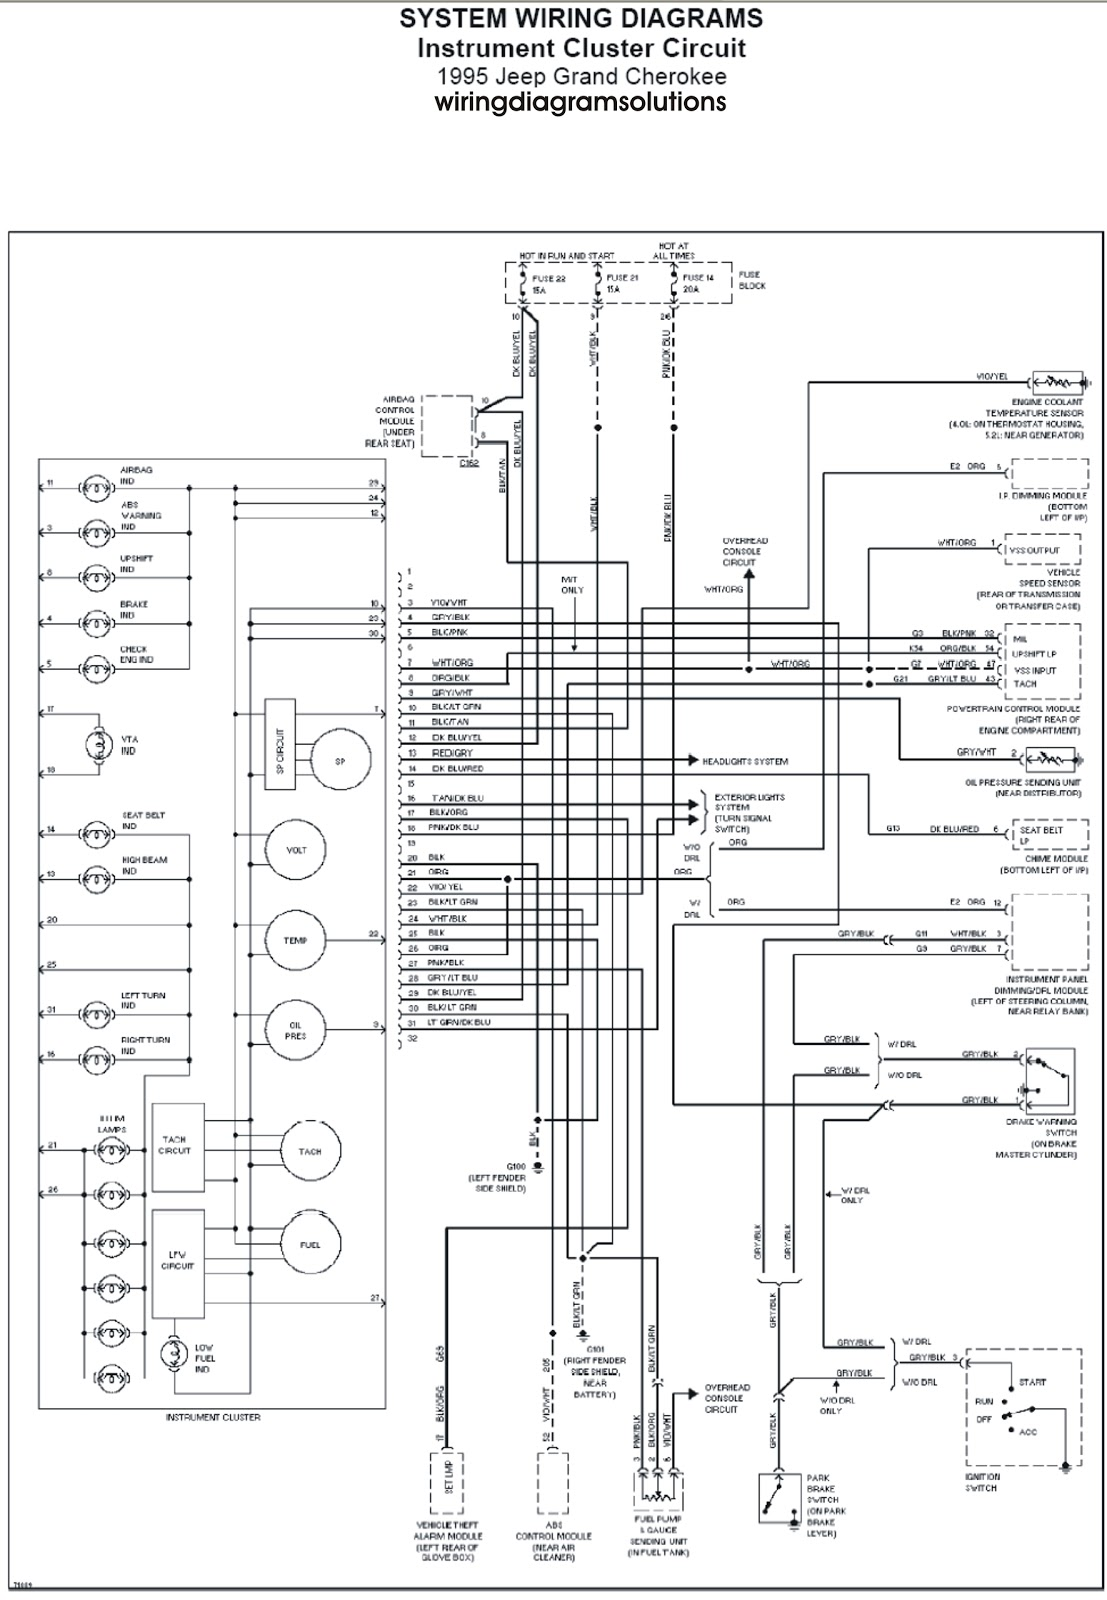 95 jeep wrangler starter relay wiring diagram wiring for 1995 jeep grand cherokee power window wiring diagram